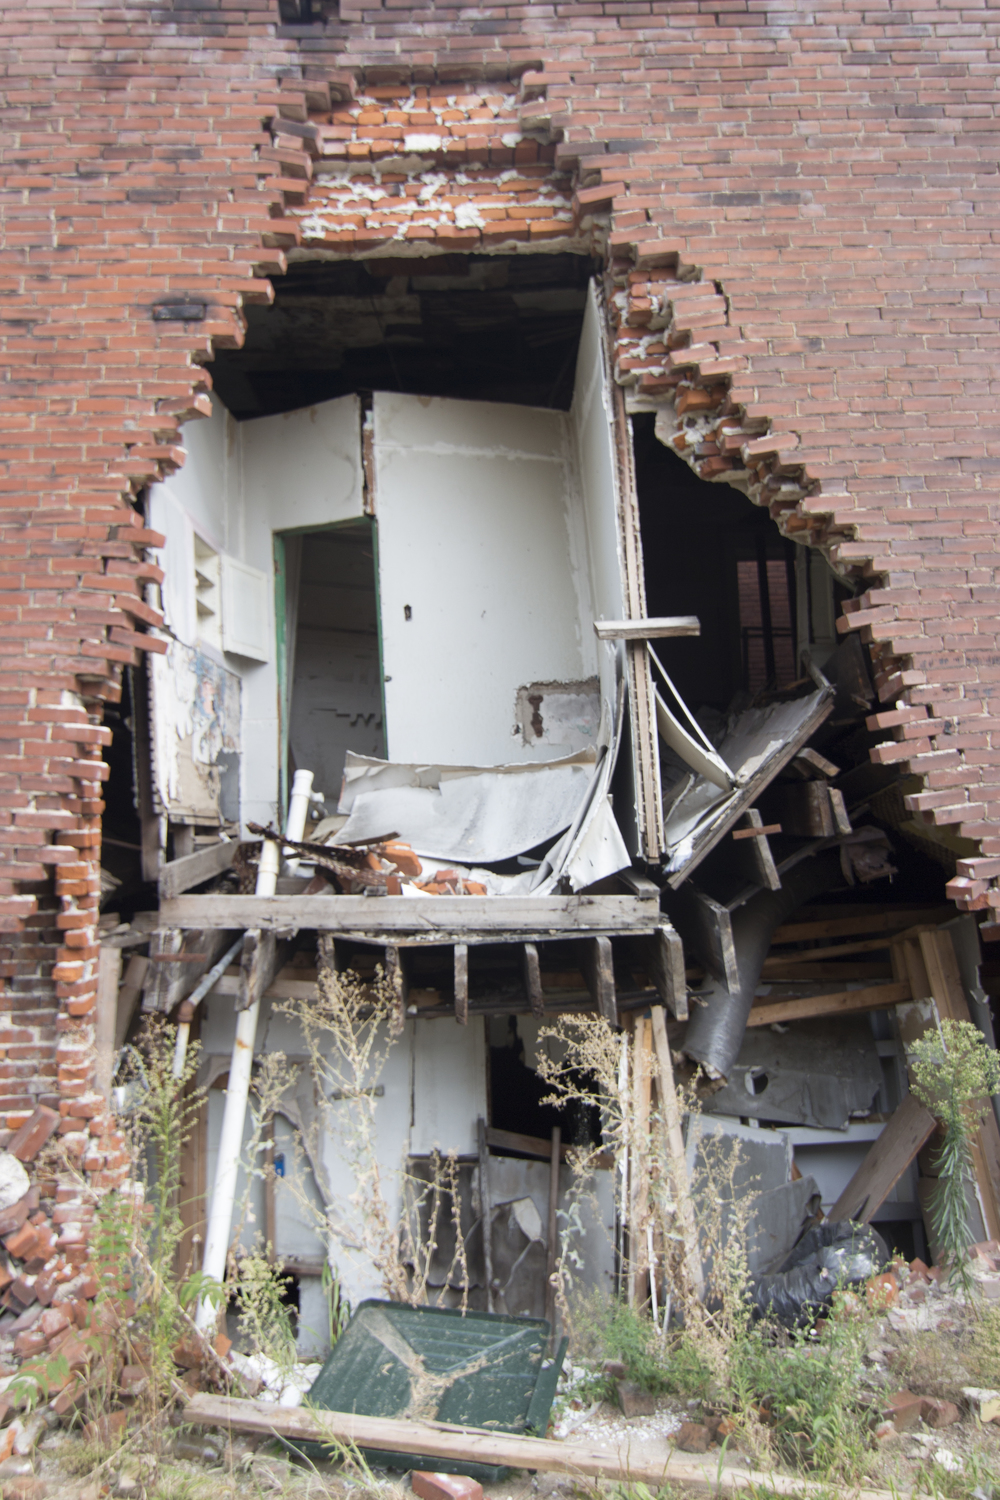 figure 5: Abandoned building falling apart due to brick theft and arson in St. Louis. Photo Credit: Jeff Knapke